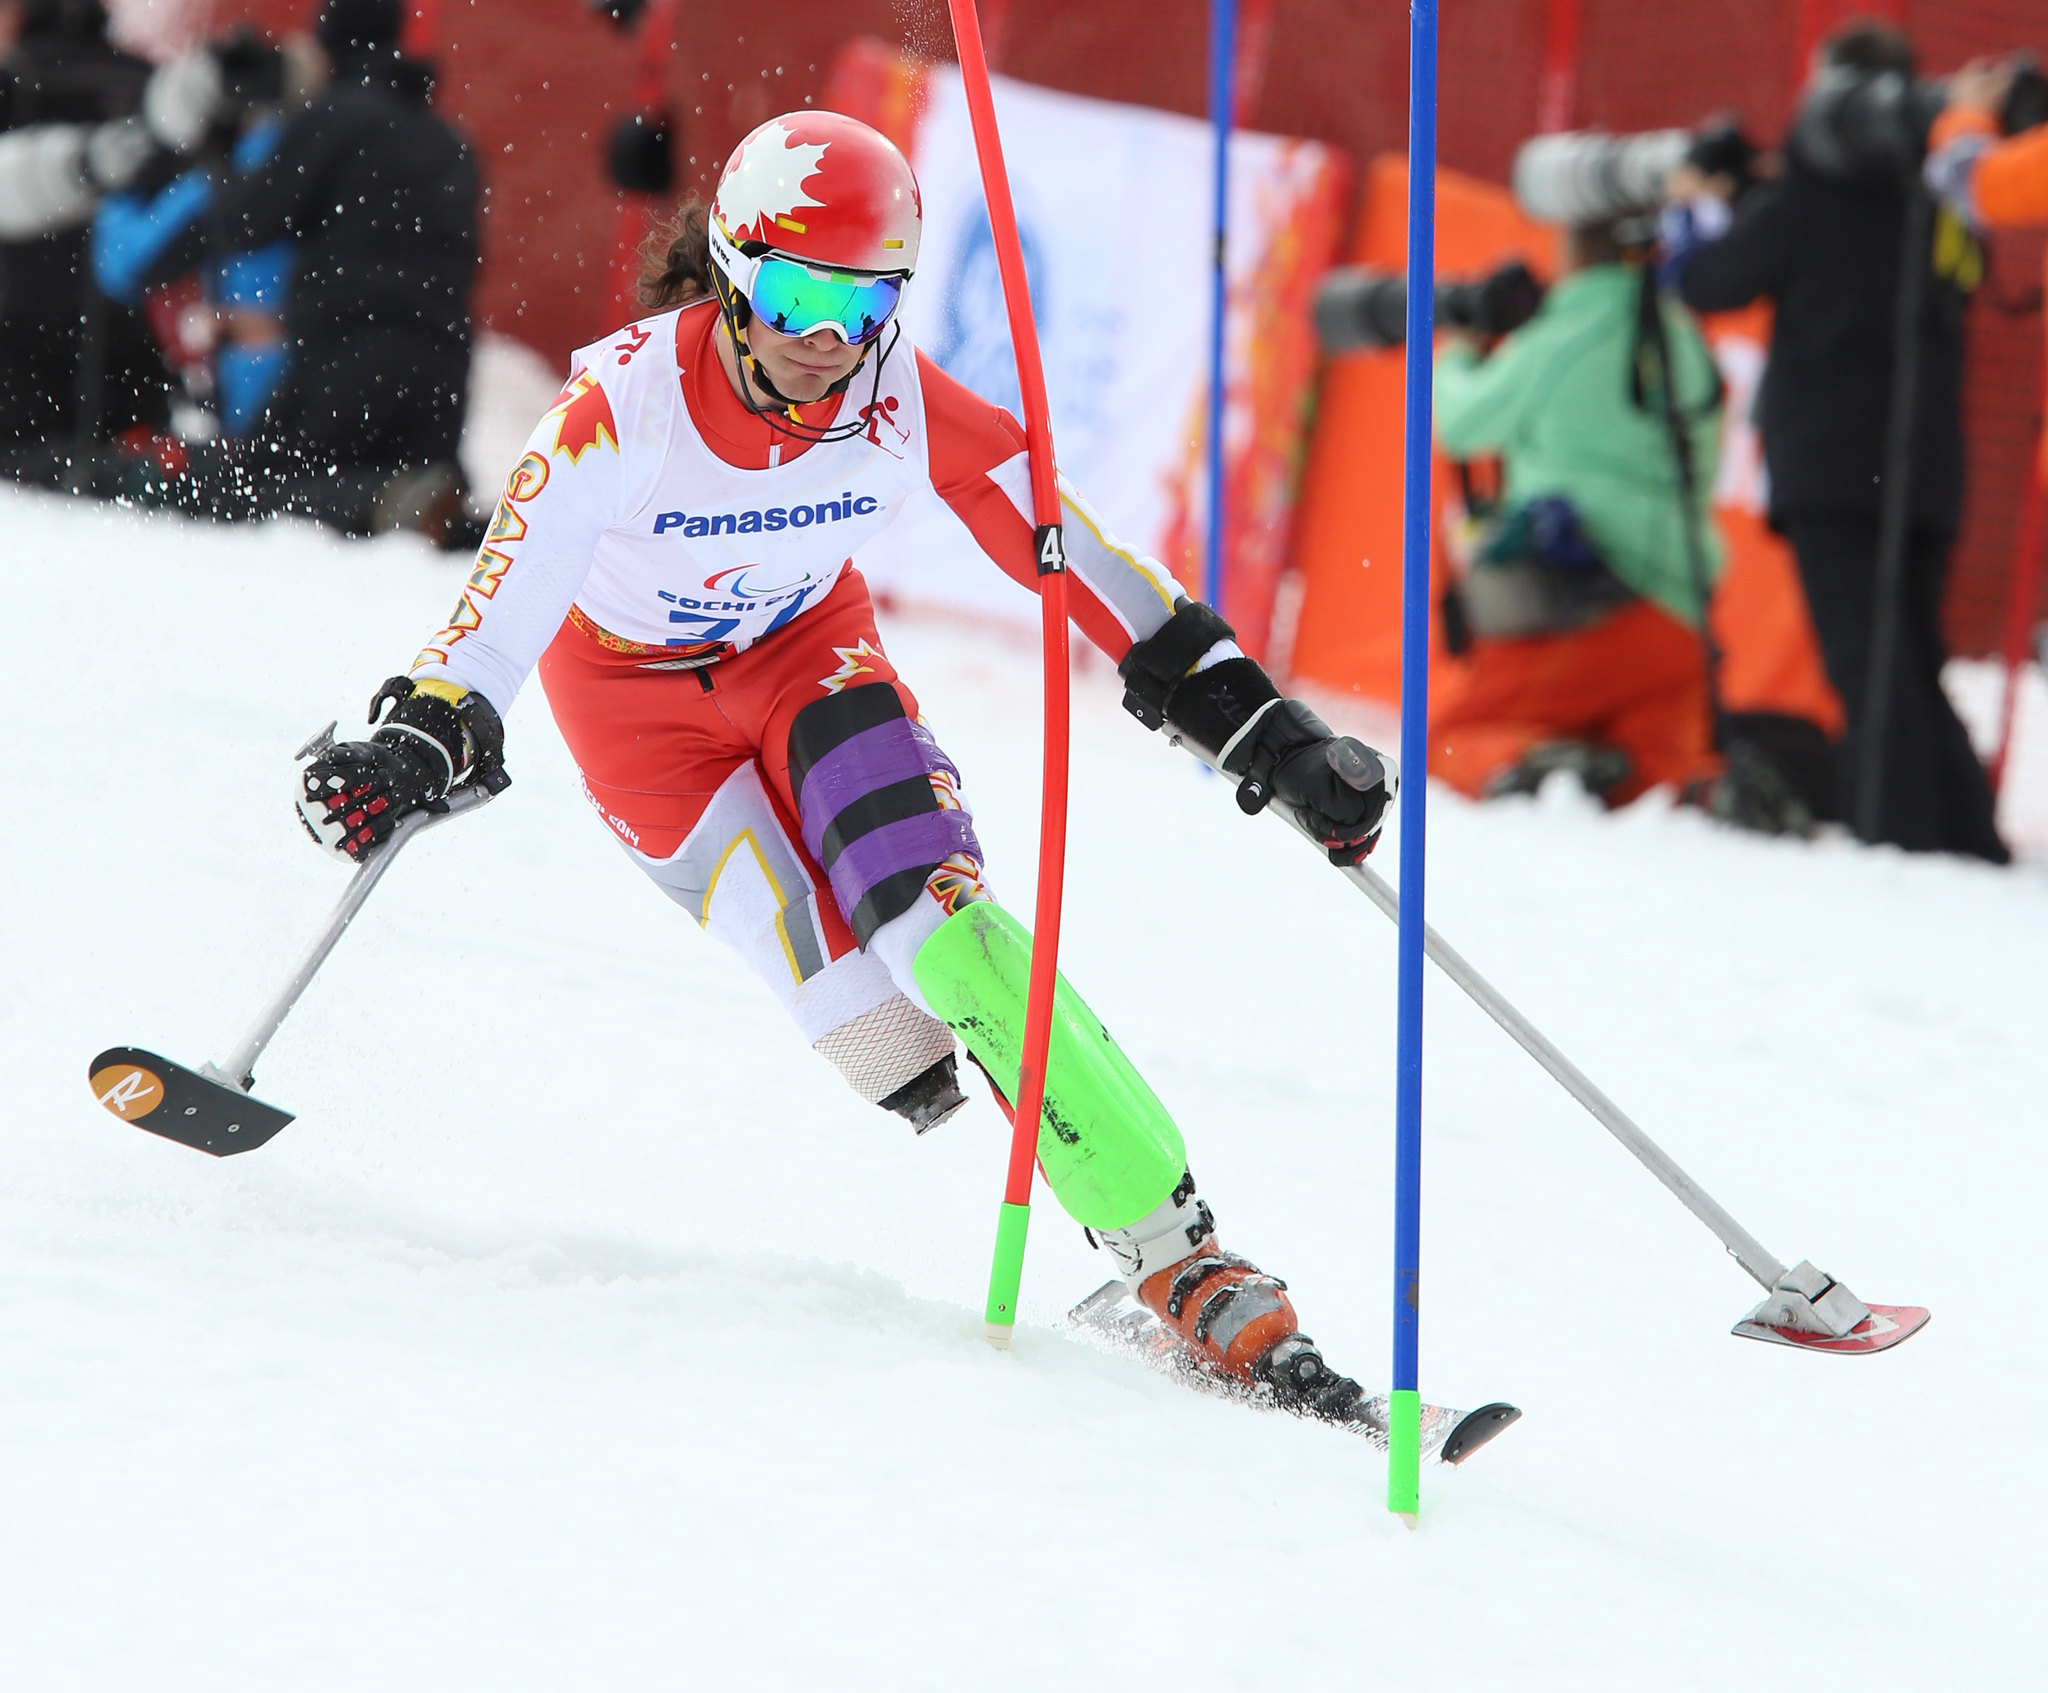 Braydon Luscombe in action in the slalom at the 2014 Paralympic Winter Games